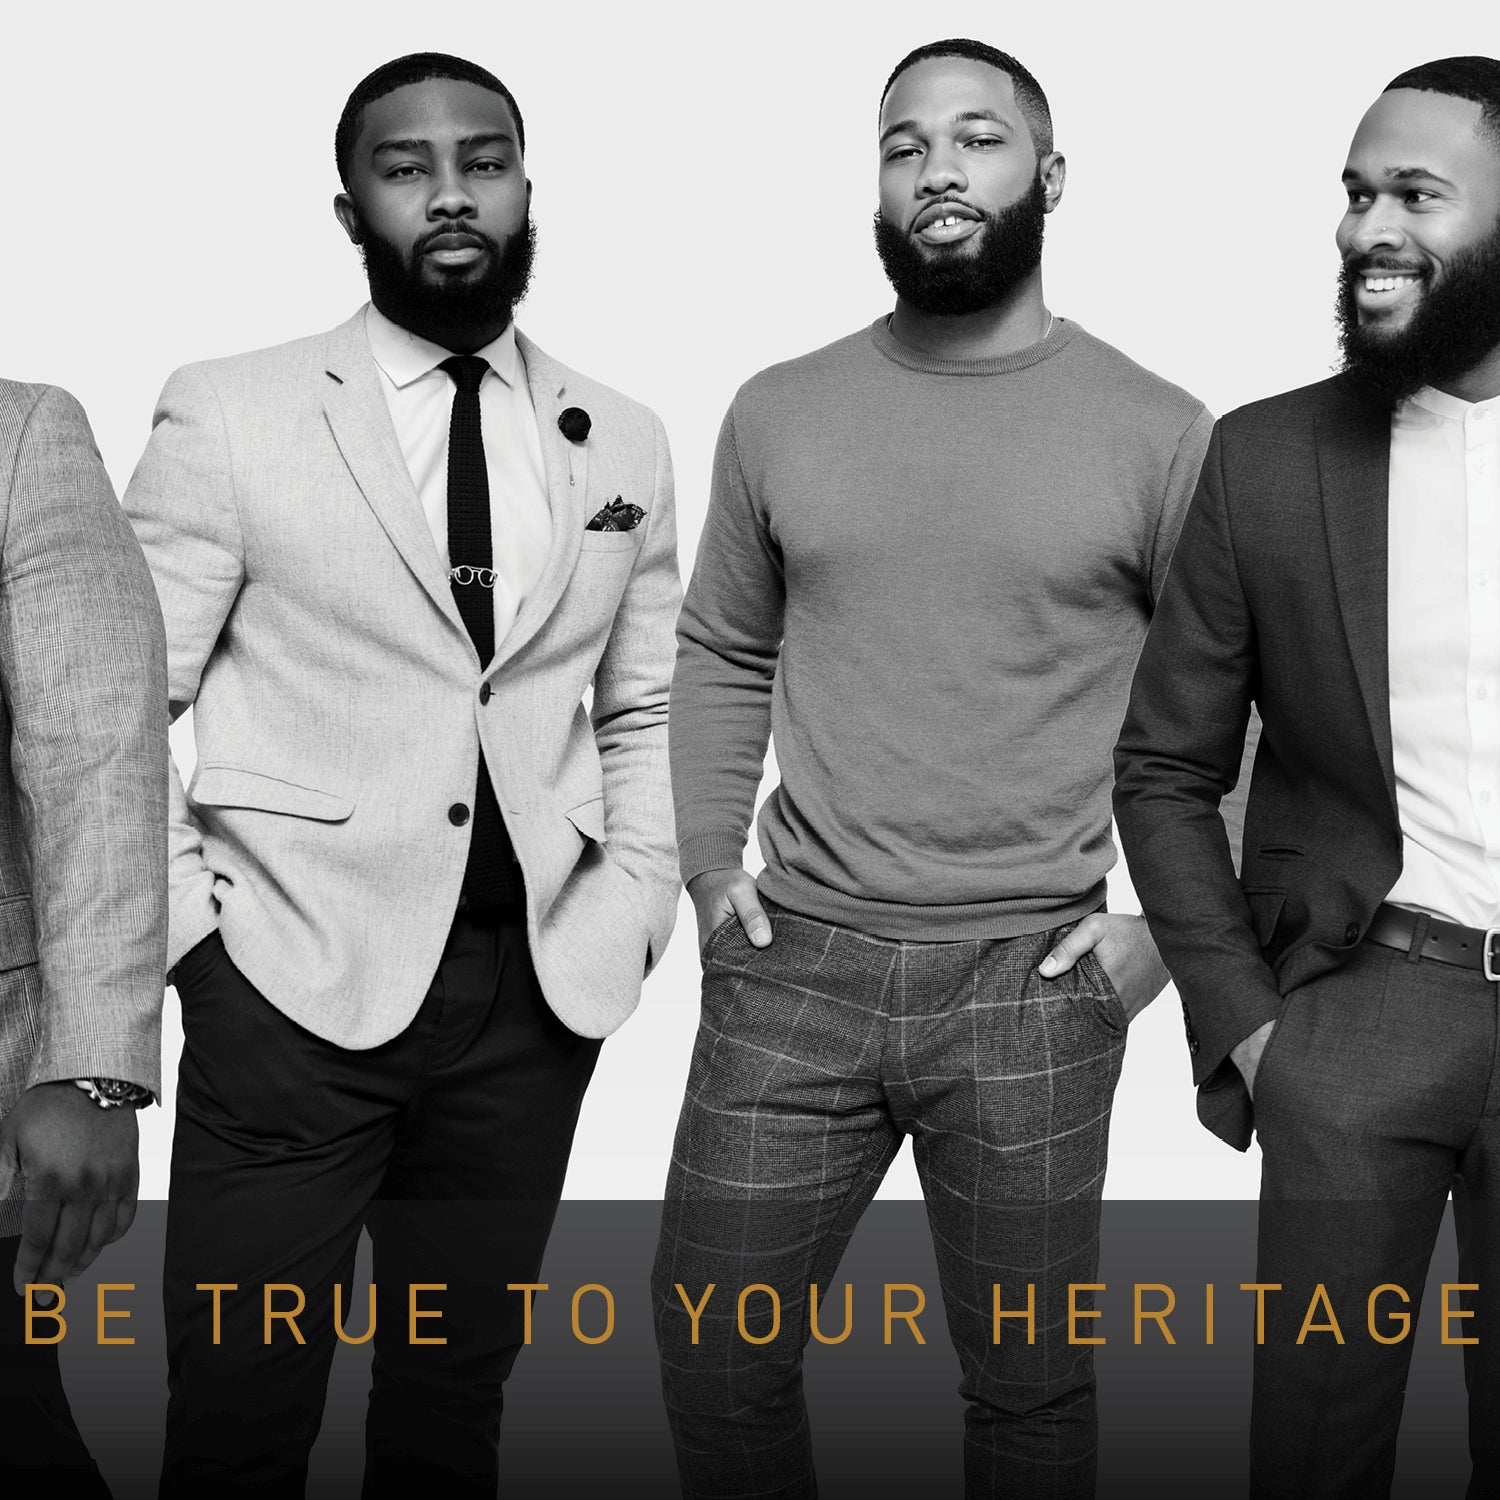 Black Fraternities: Alpha Phi Alpha Heritage